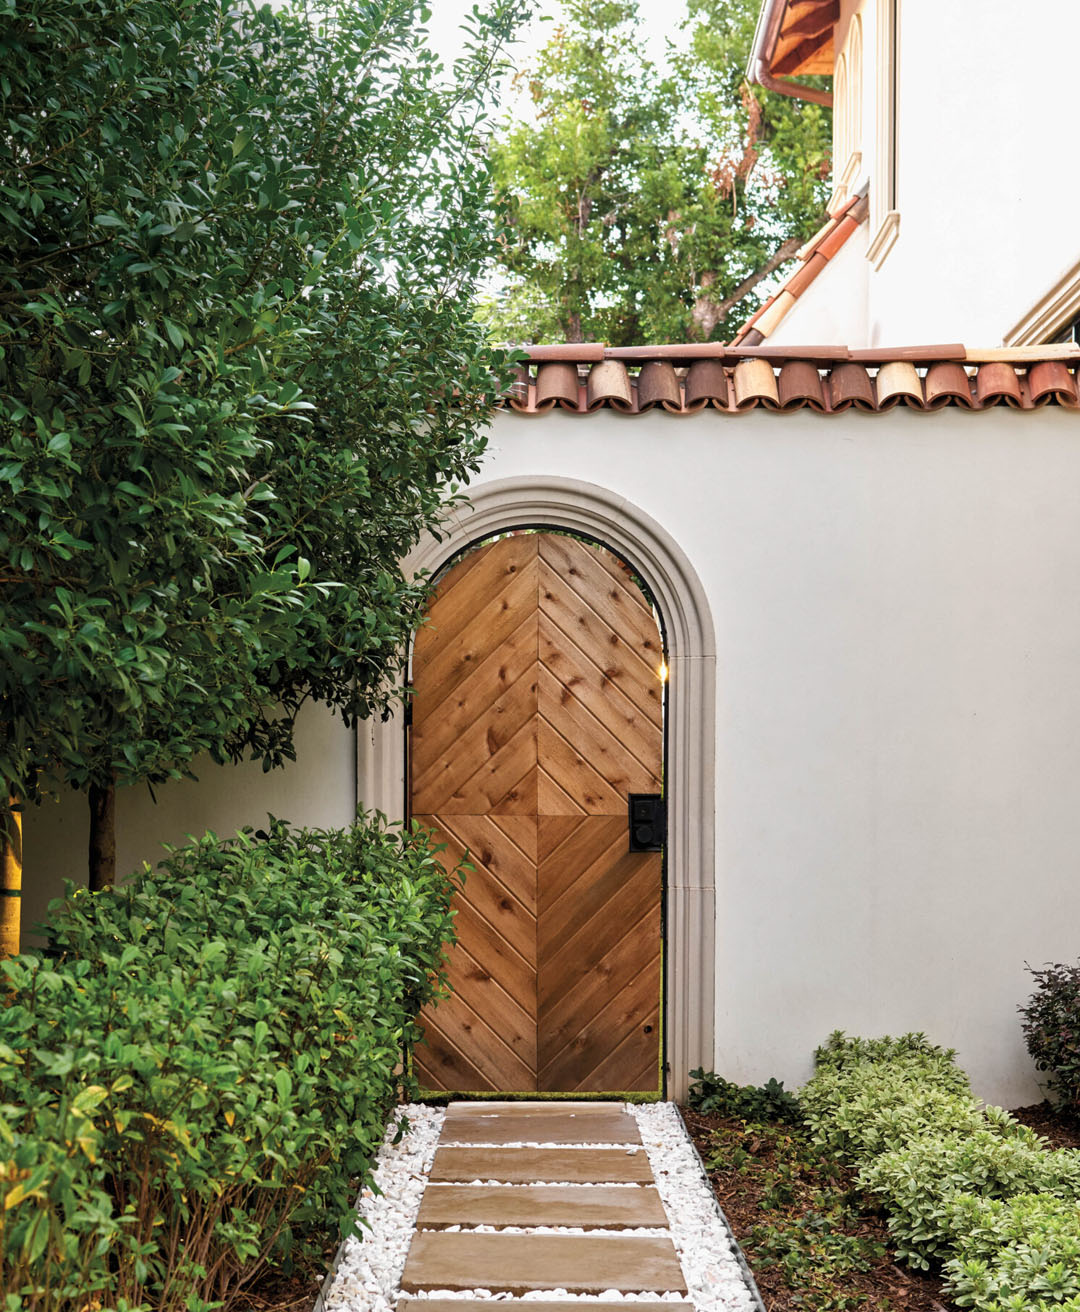 Wooden Arch Door and Red Clay Roof Tiles